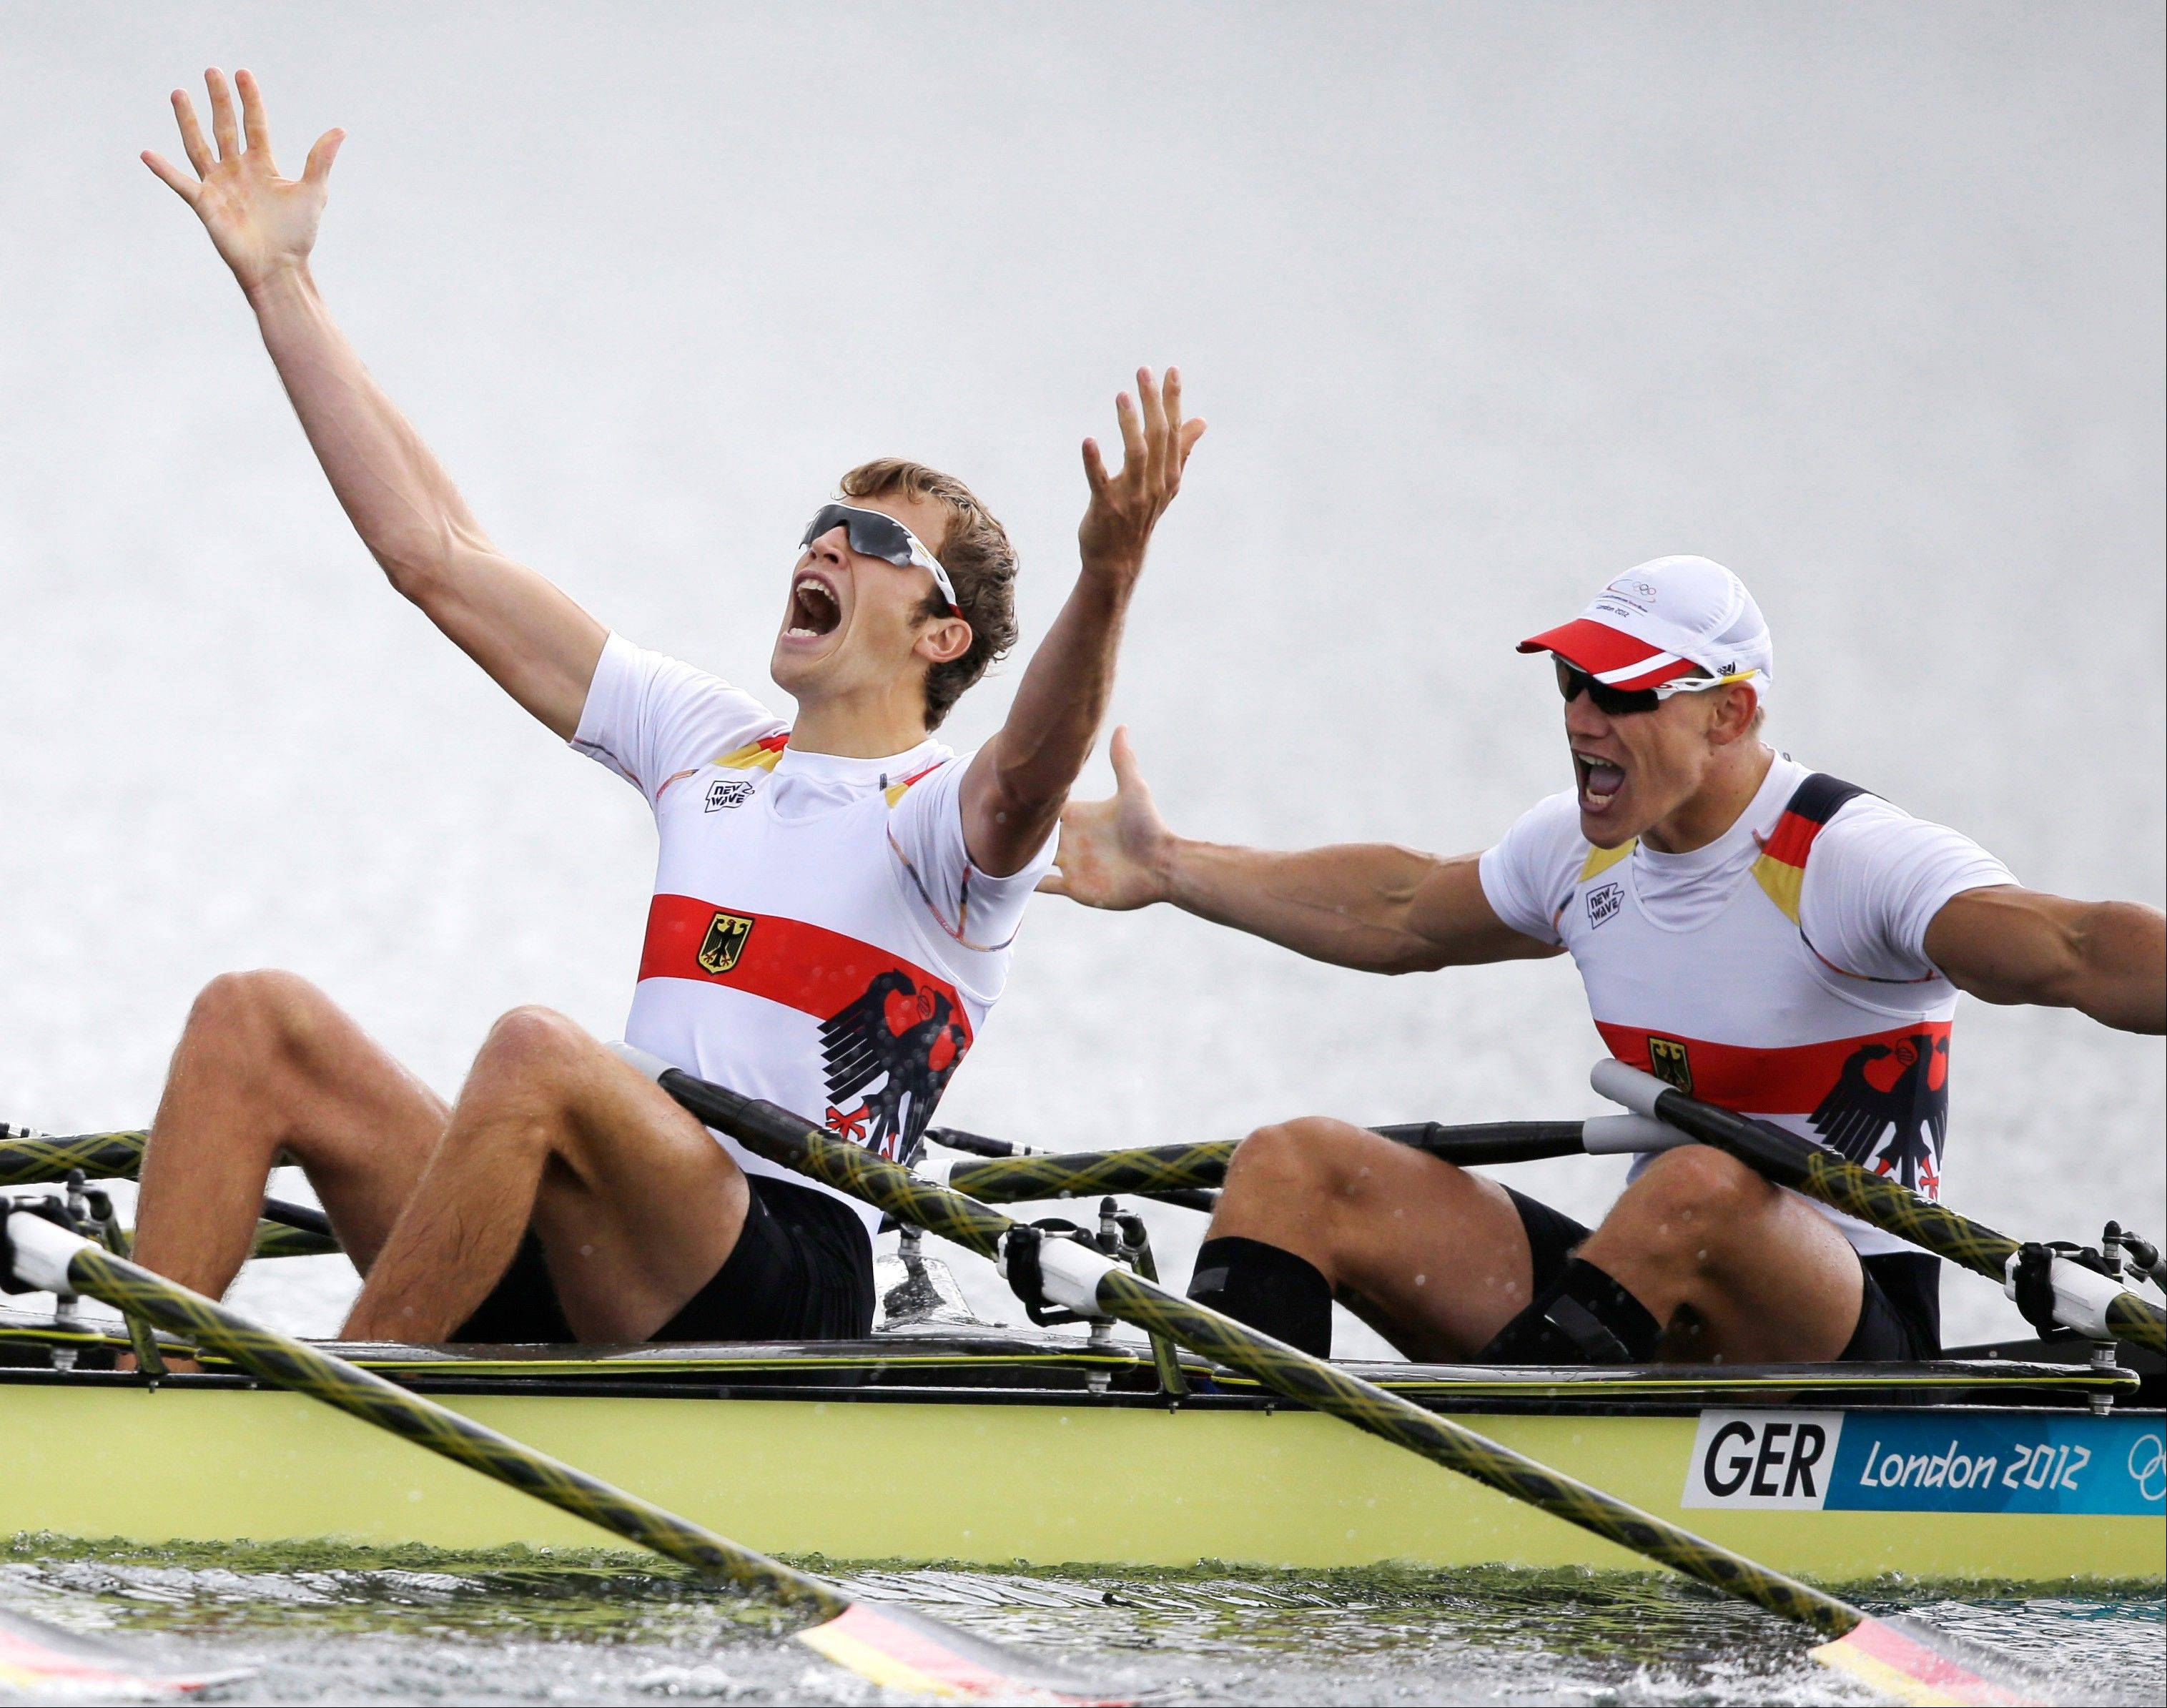 Germany's Phillipp Wende and Karl Schulze celebrate after winning the gold medal for the men's quadruple rowing sculls in Eton Dorney, near Windsor, England, at the 2012 Summer Olympics, Friday, Aug. 3, 2012.